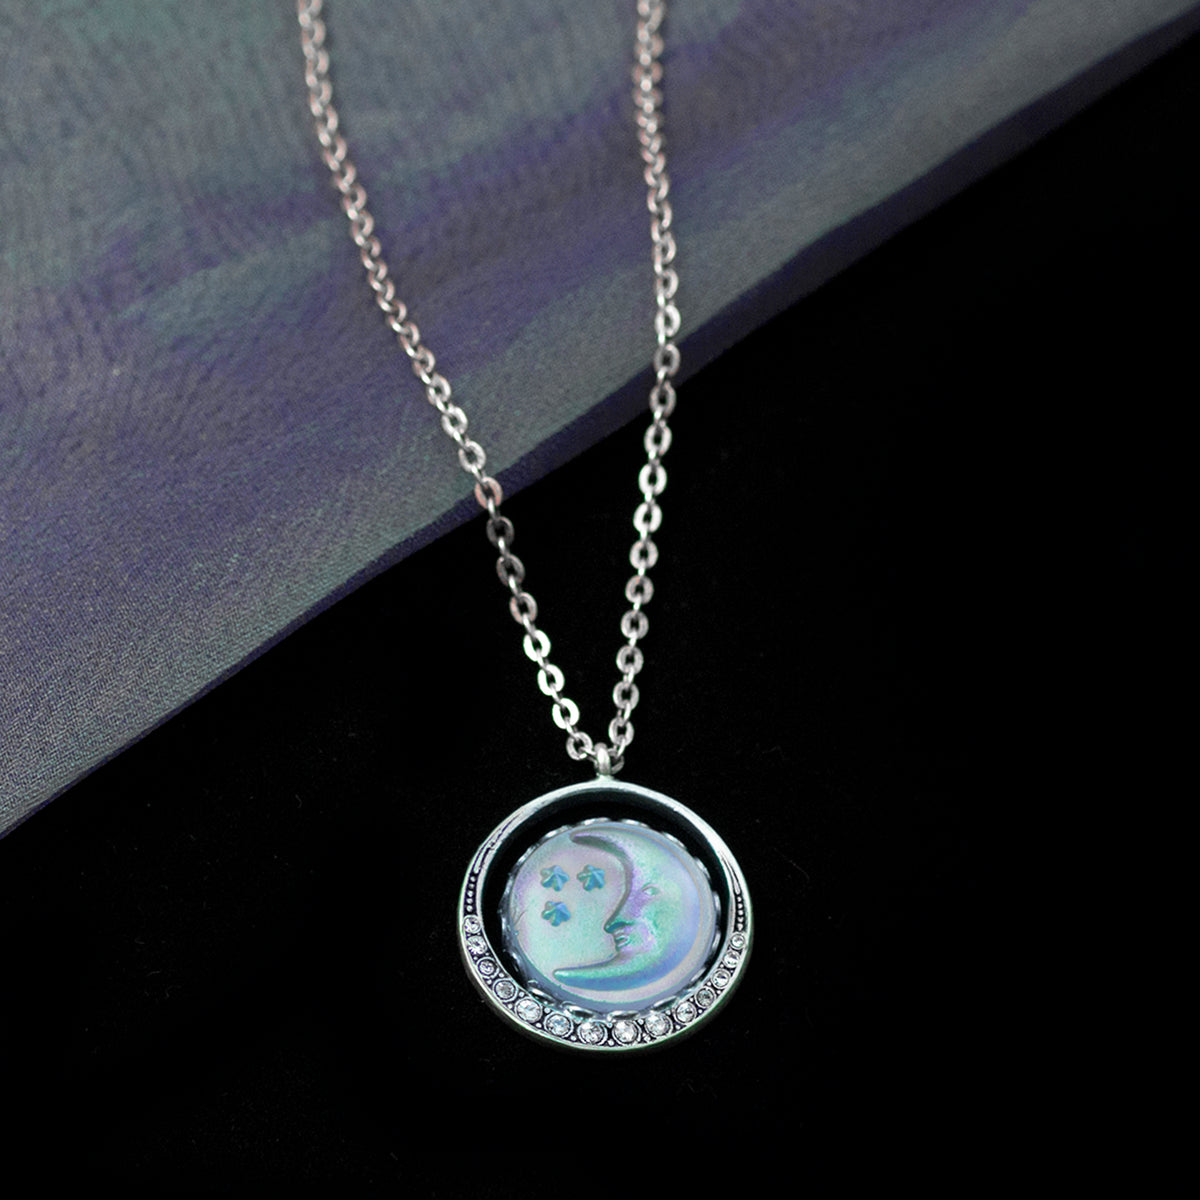 Iridescent Moon Necklace N1631 - Sweet Romance Wholesale